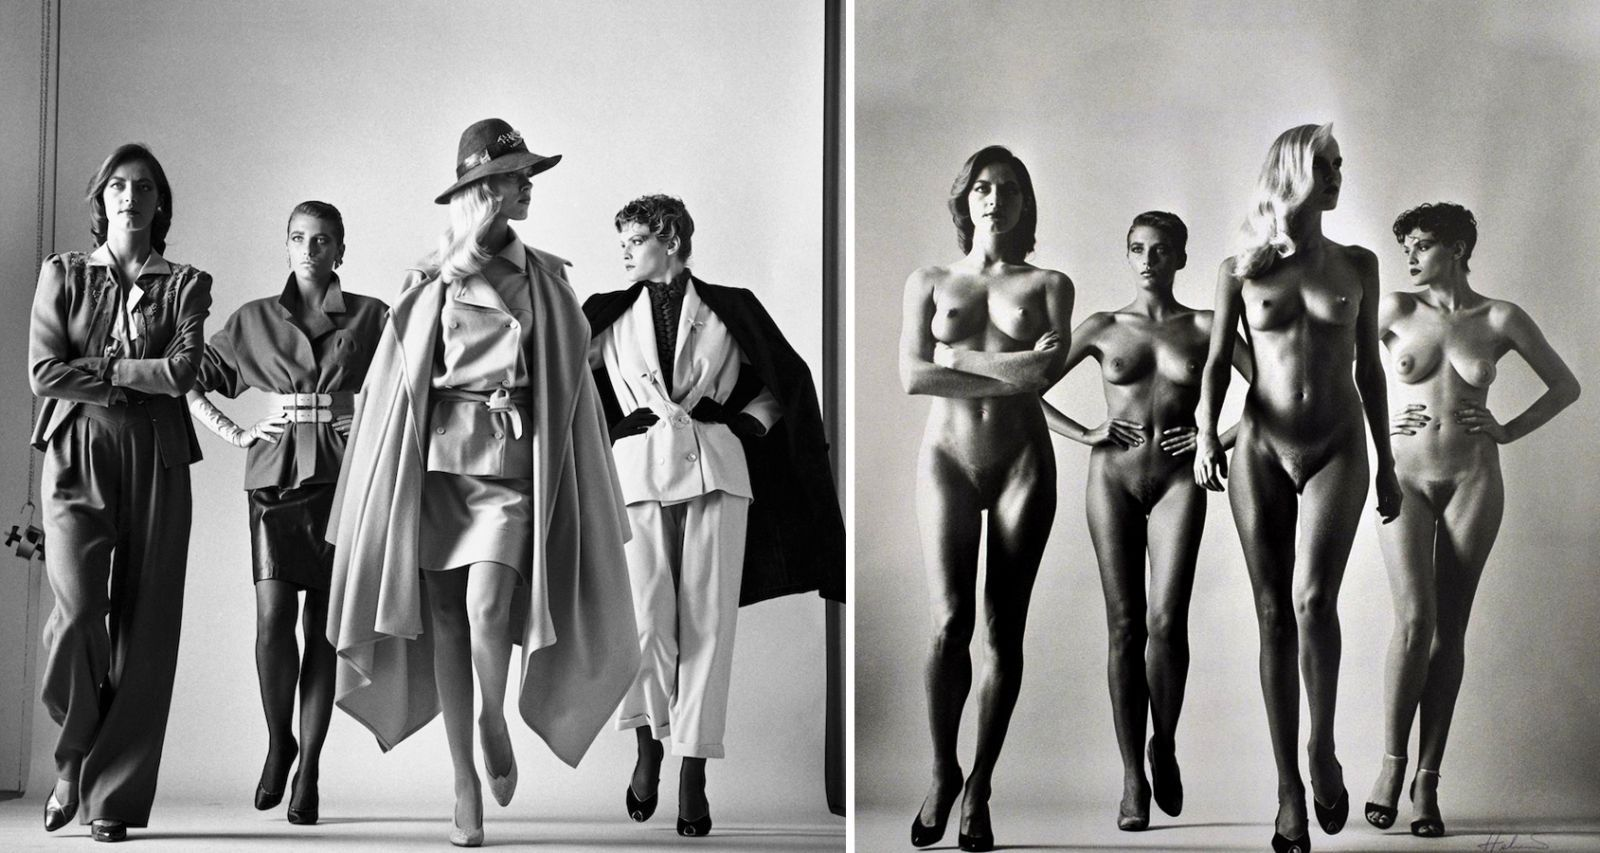 Helmut Newton, biographie